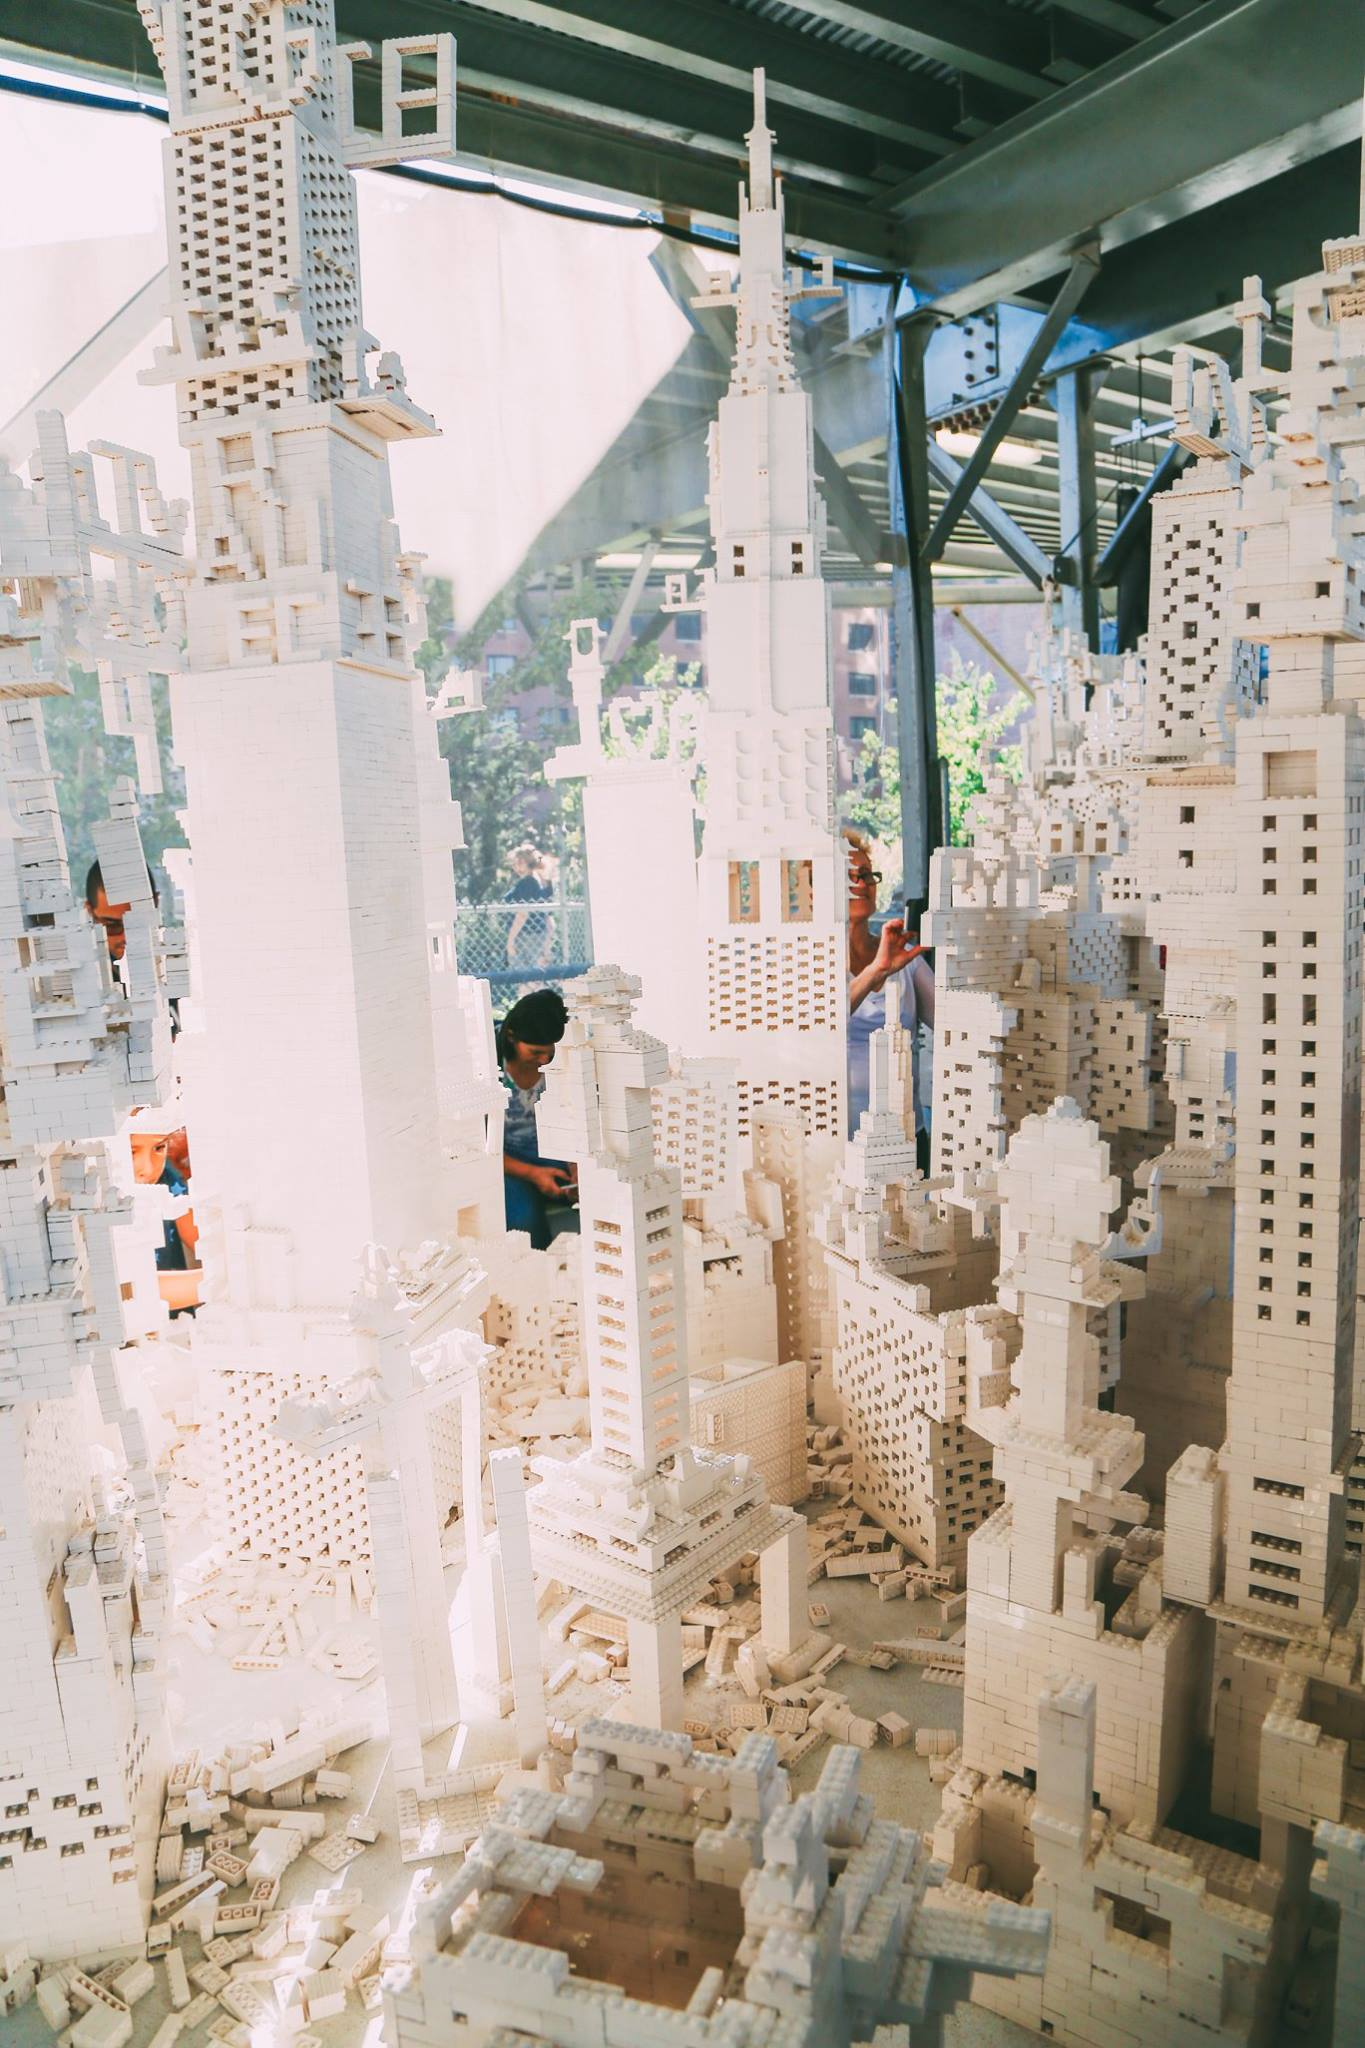 New York Diary: The High Line, Lego House And New York Fashion Week (11)